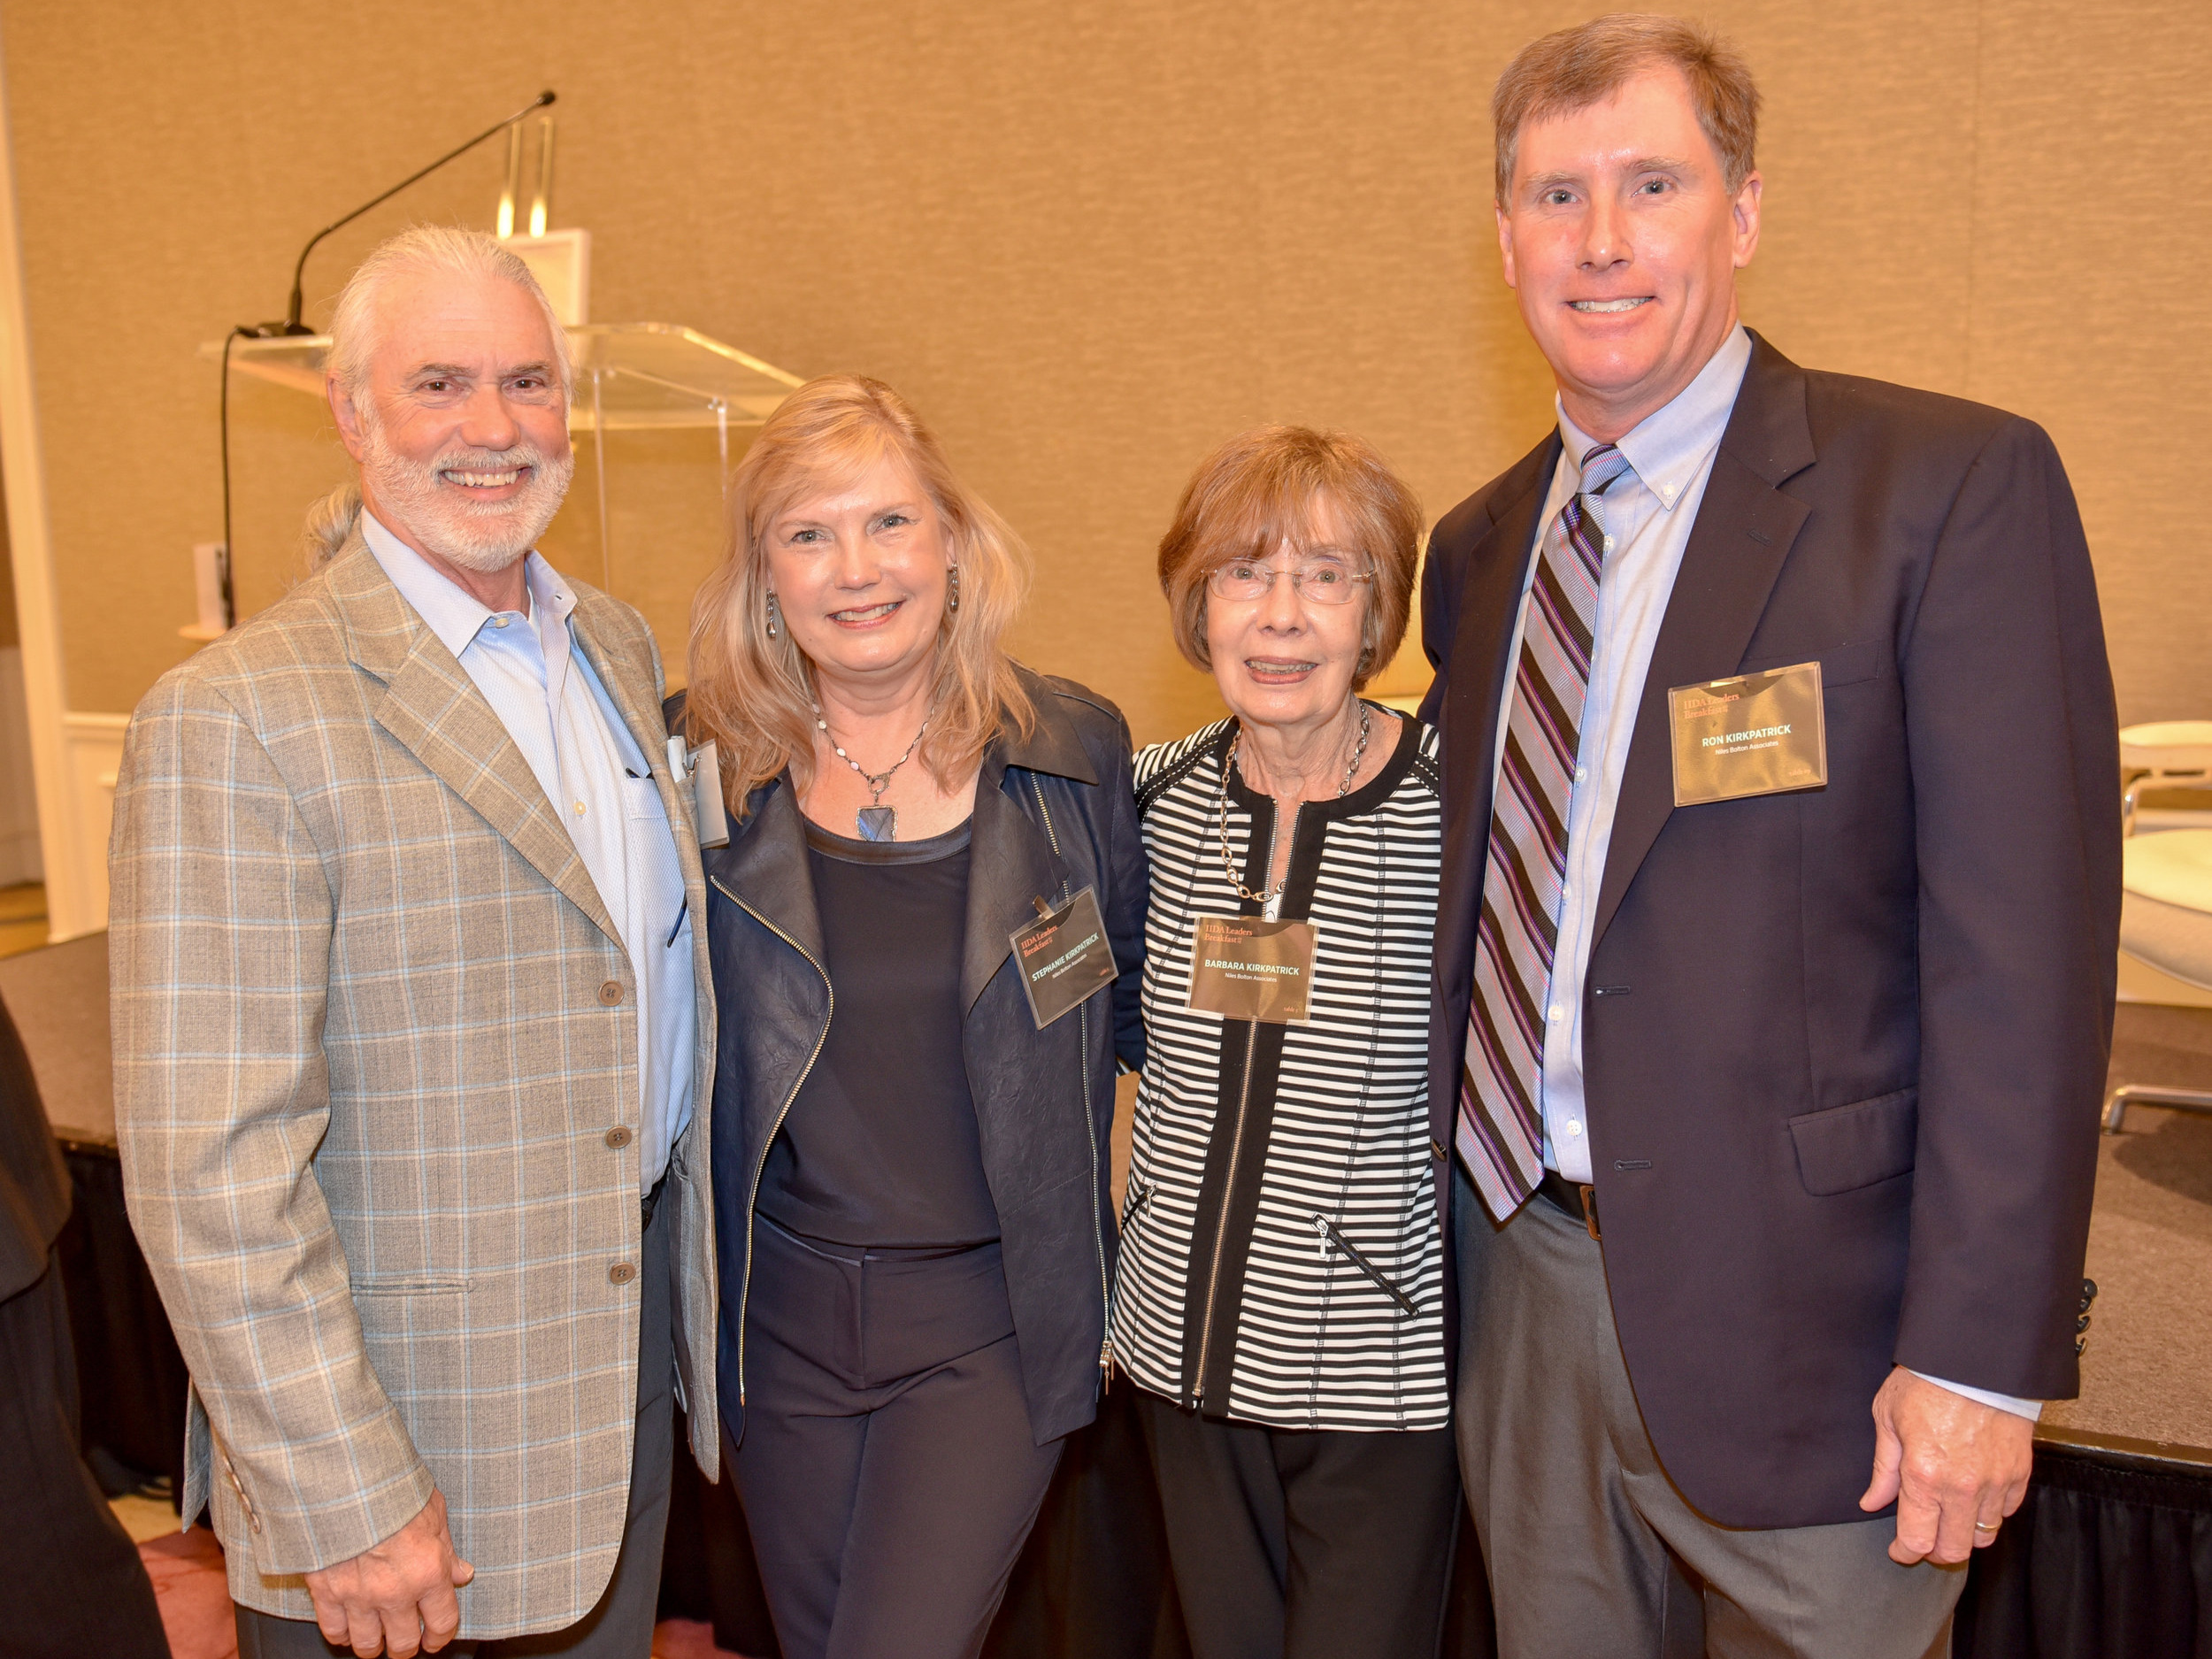 Stephanie with her husband (Stan Everett), mother (Barbara Kirkpatrick) and brother (Ron Kirkpatrick)